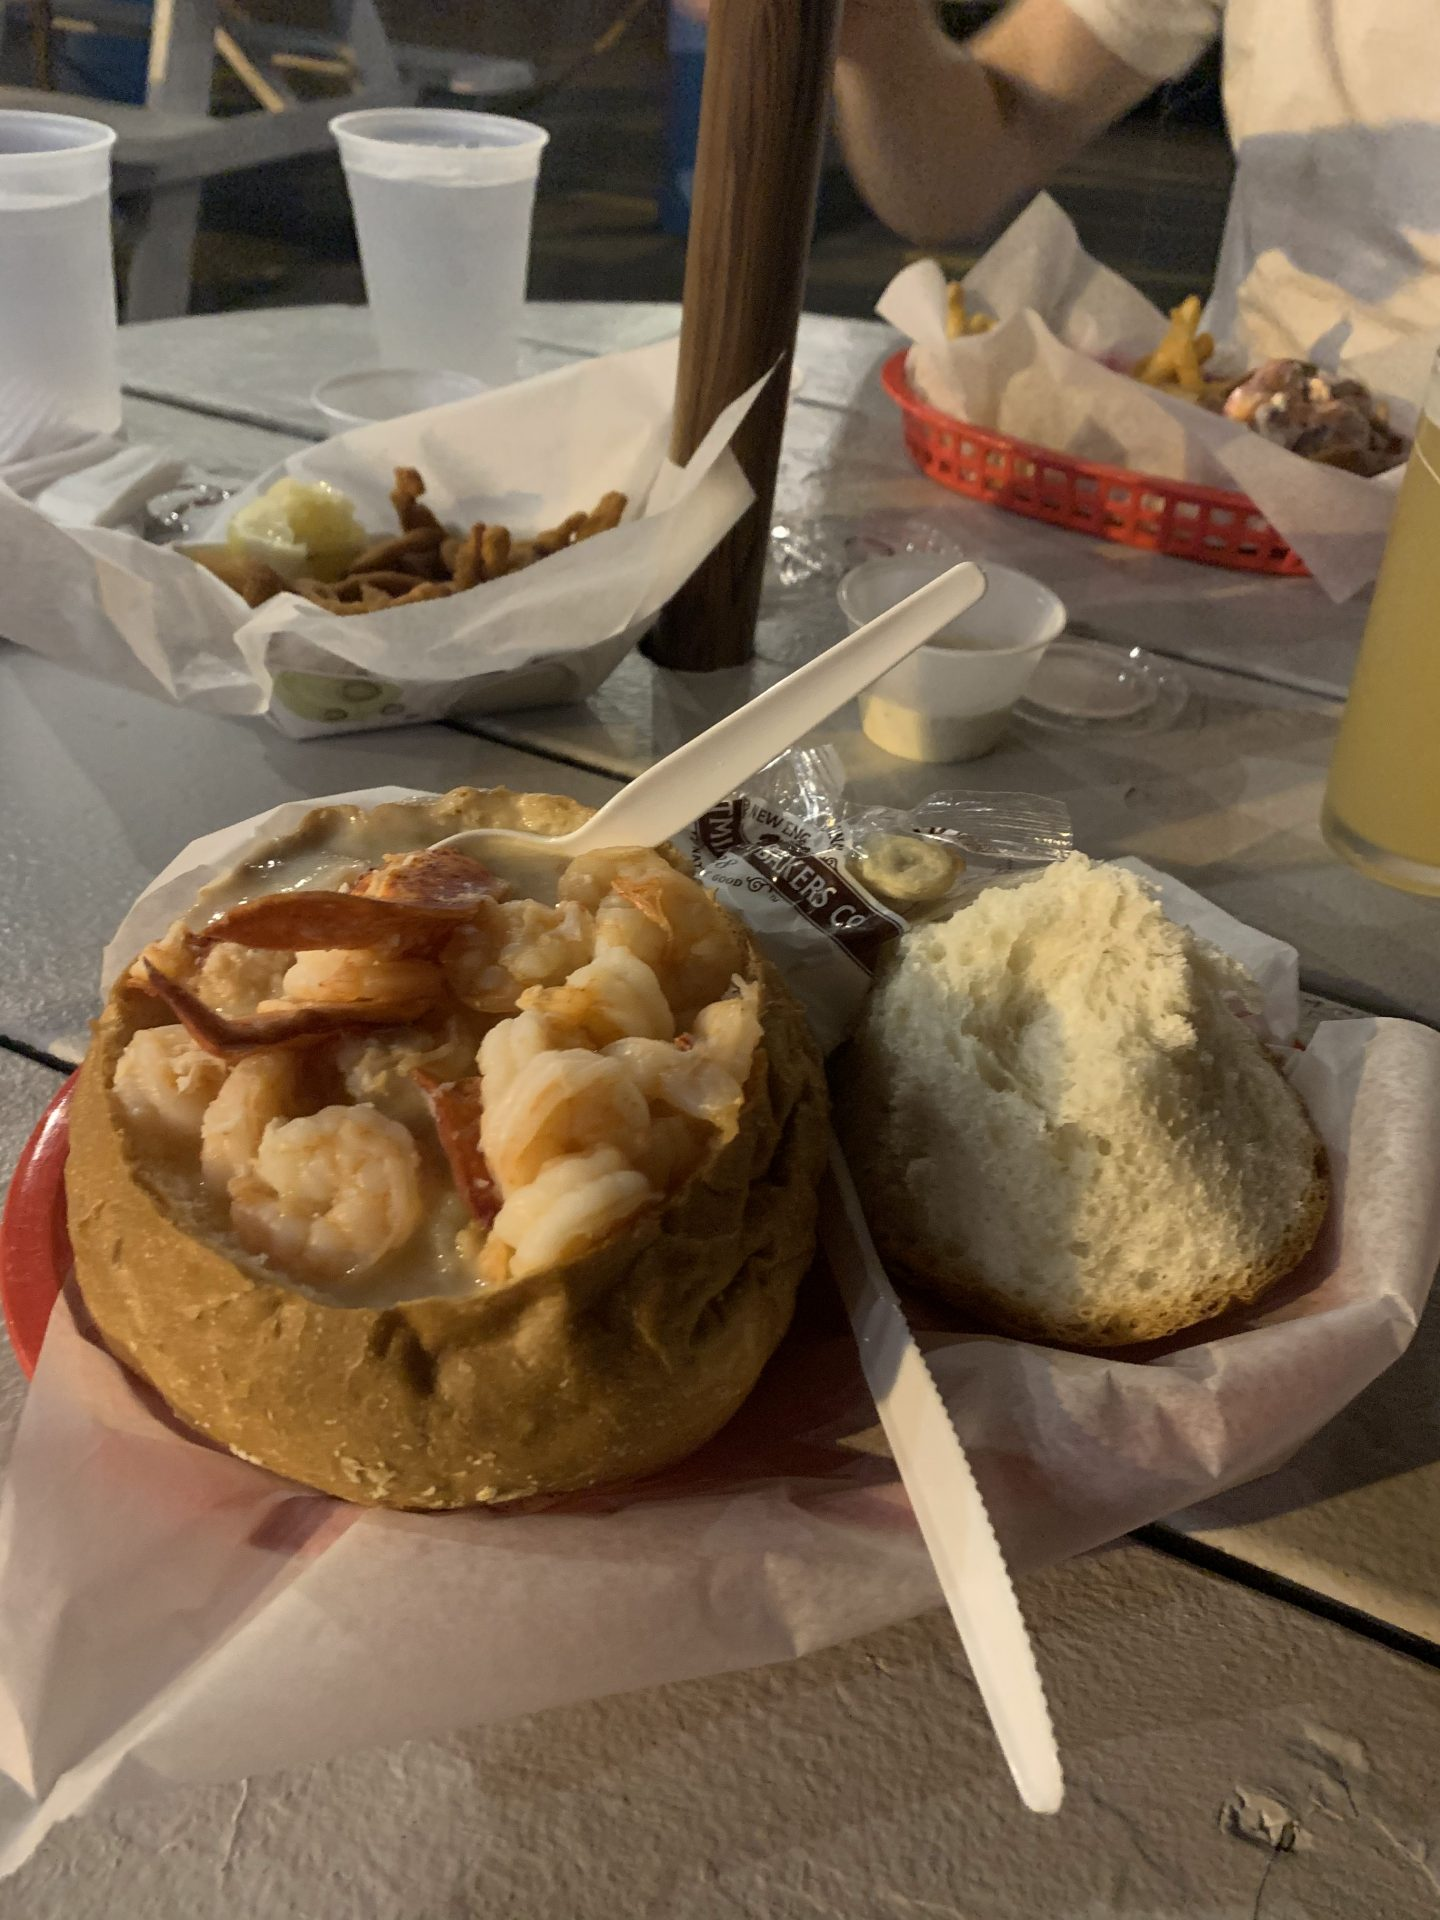 super seafood chowder in a bread bowl from gilberts chowder house